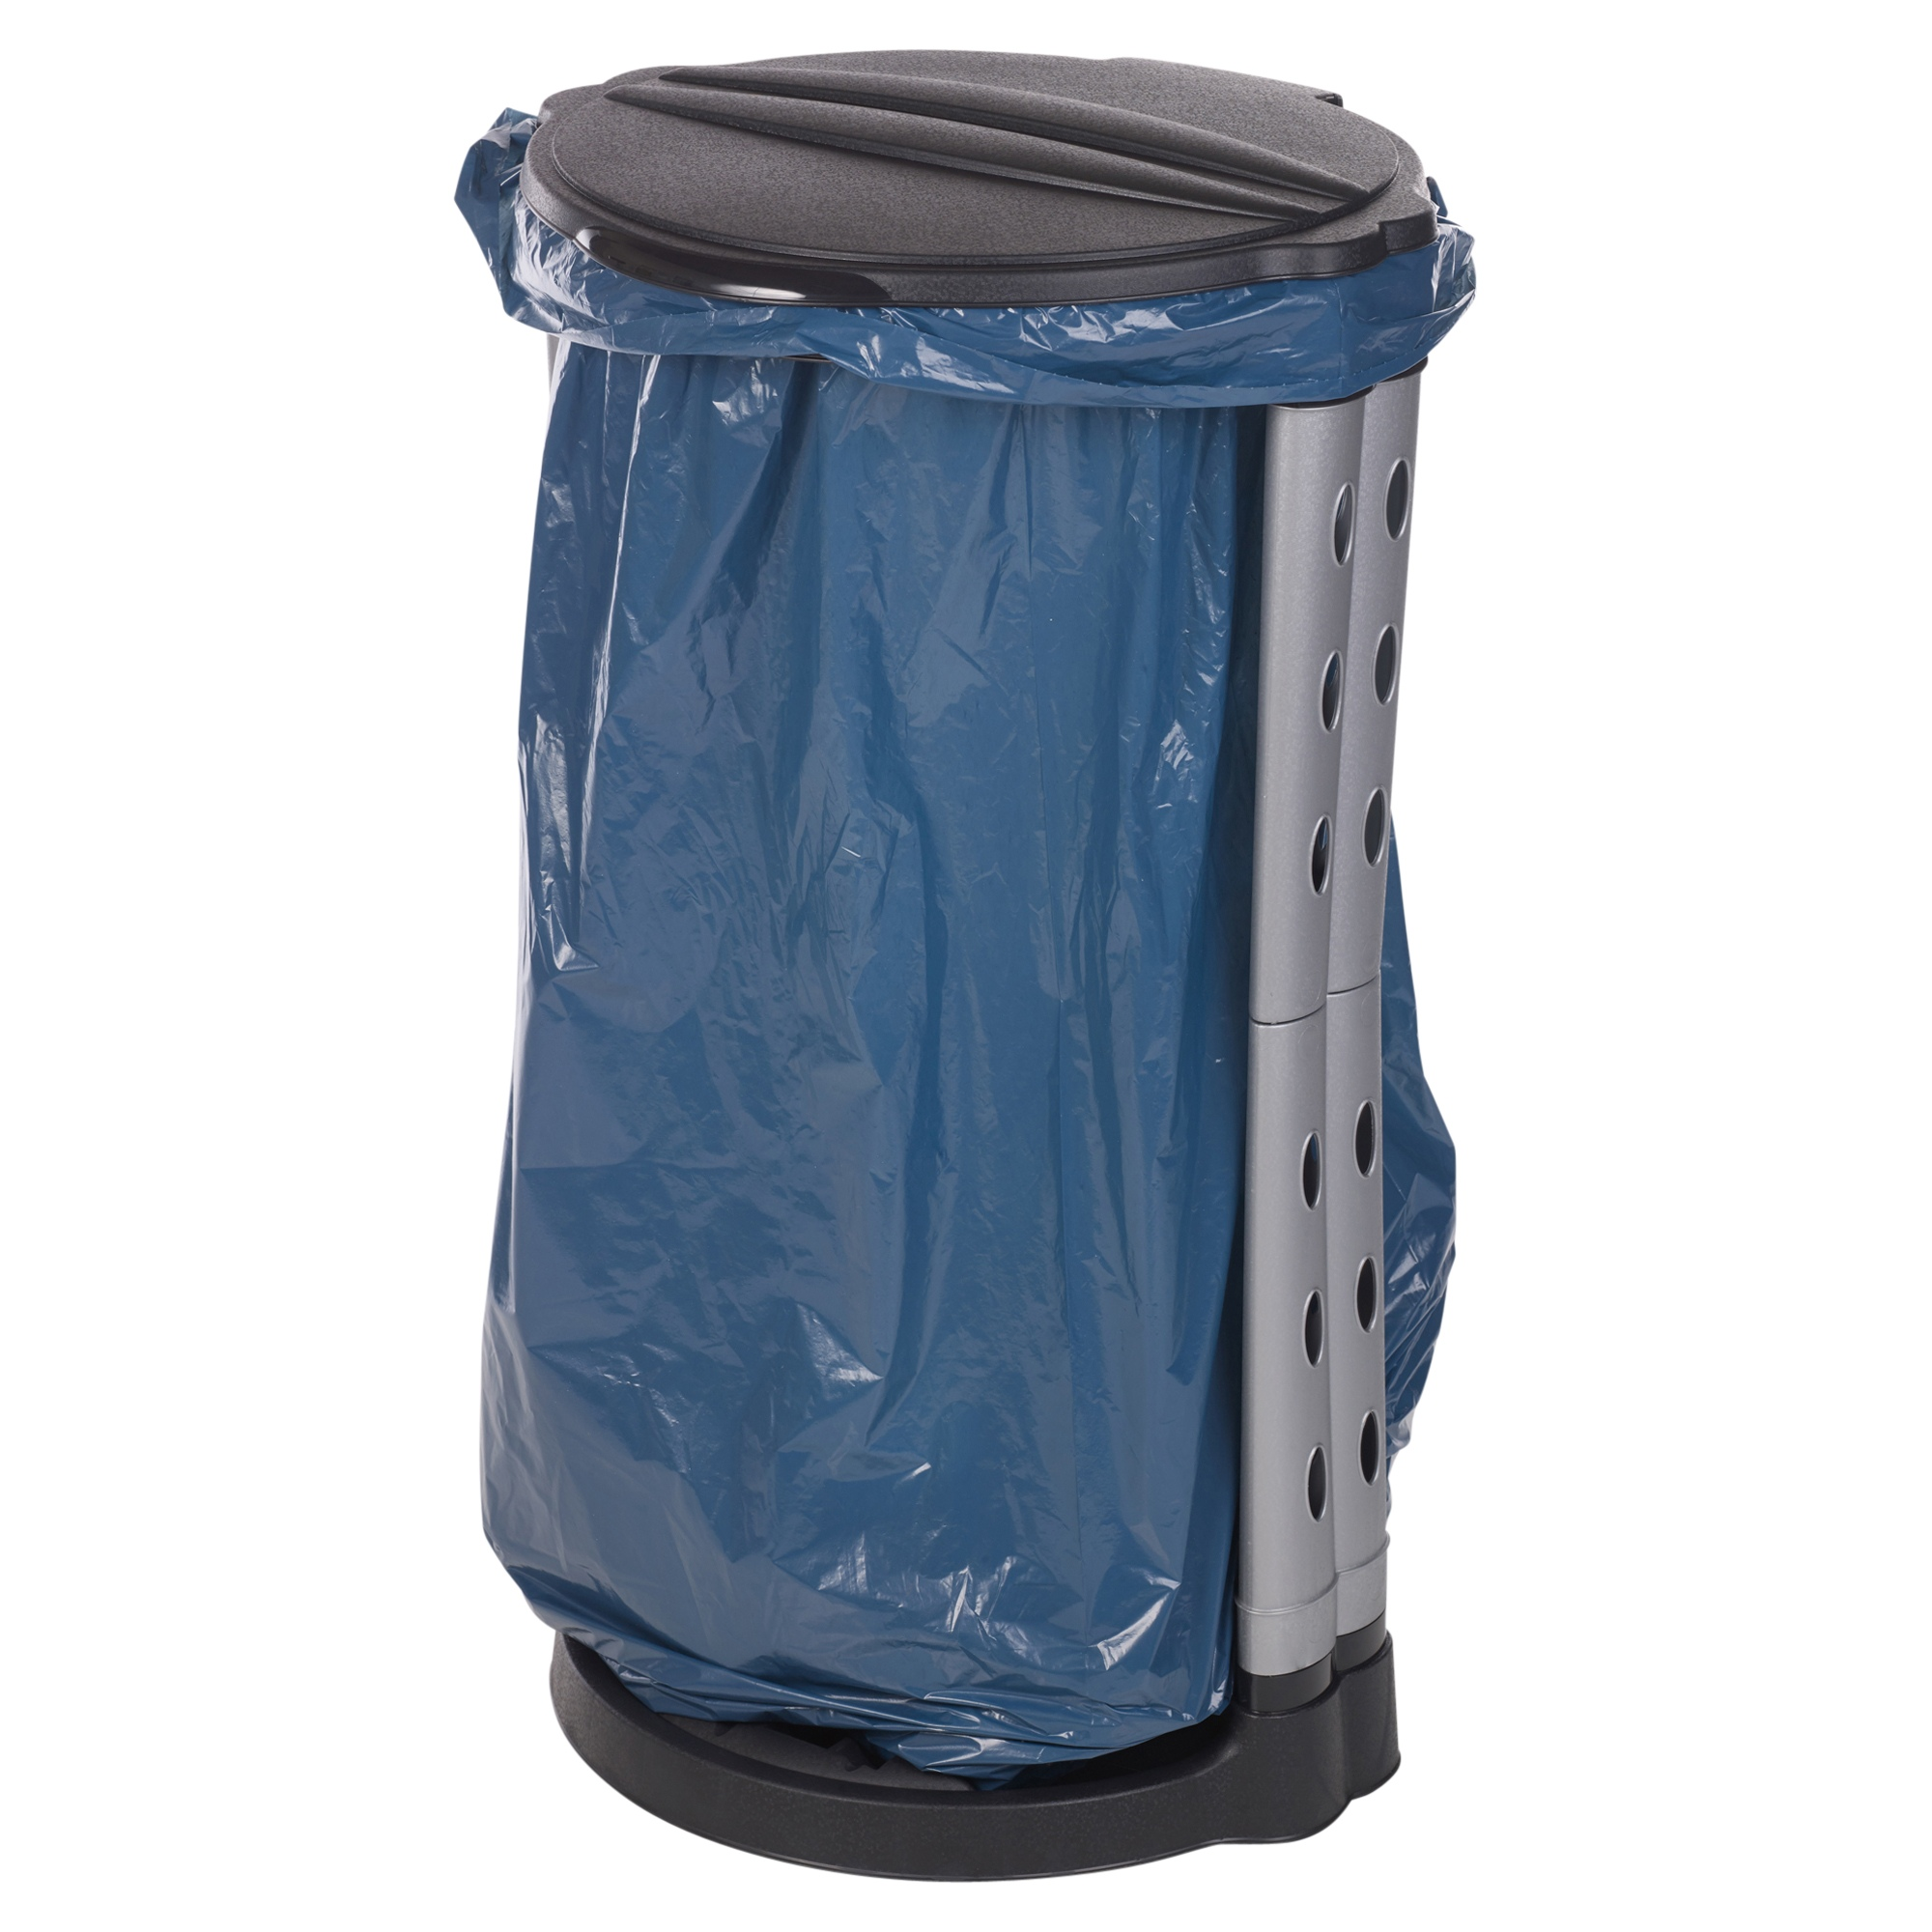 120l collapsible plastic recycle garbage waste rubbish bin bag sack stand holder ebay - Collapsible trash bins ...